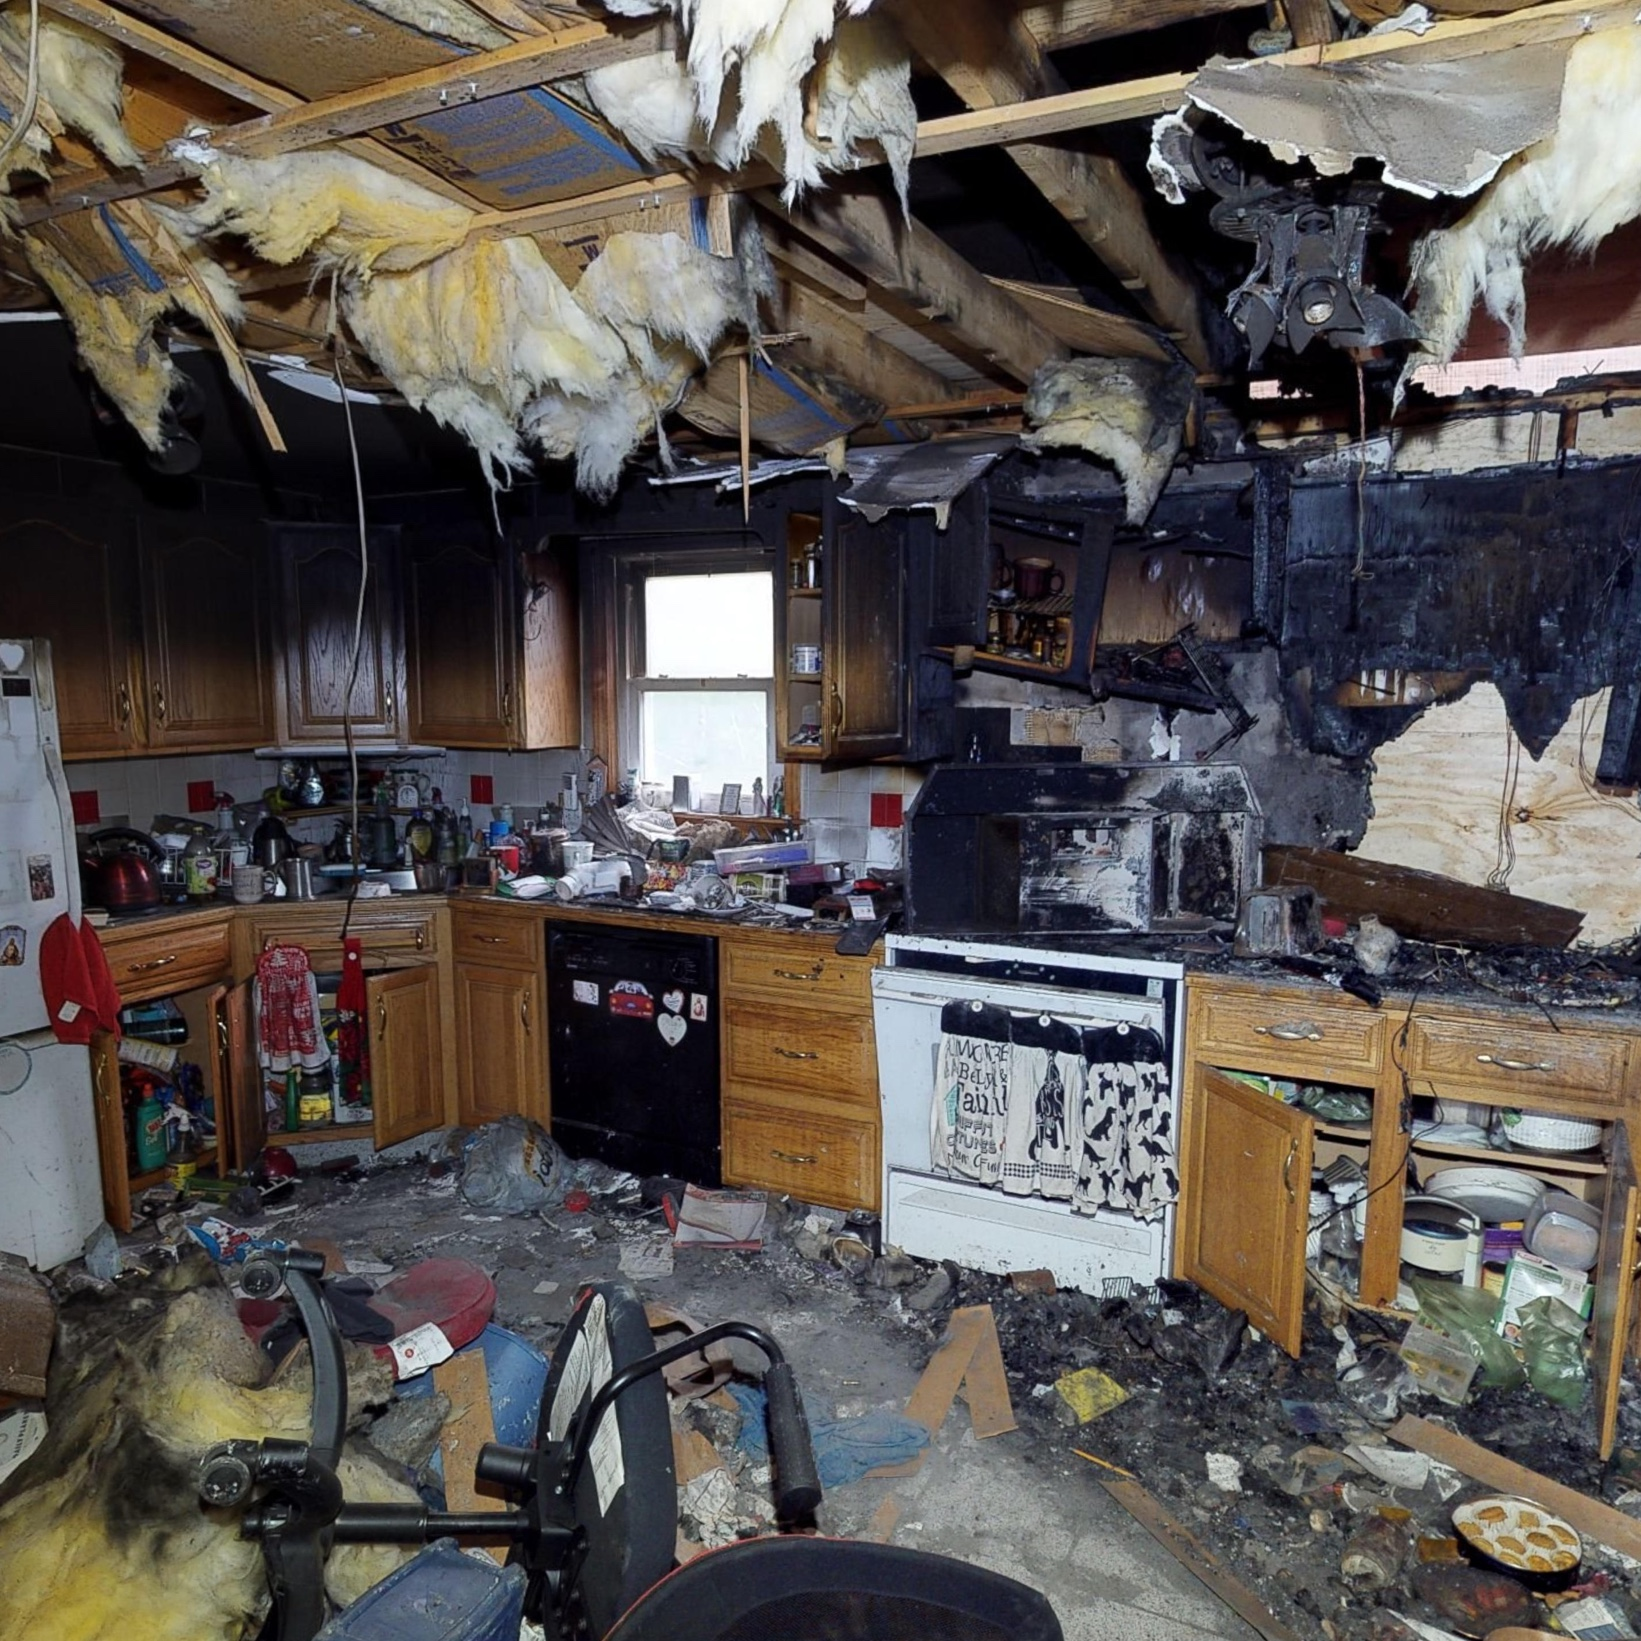 Extreme floor to ceiling property damage fills a residential kitchen